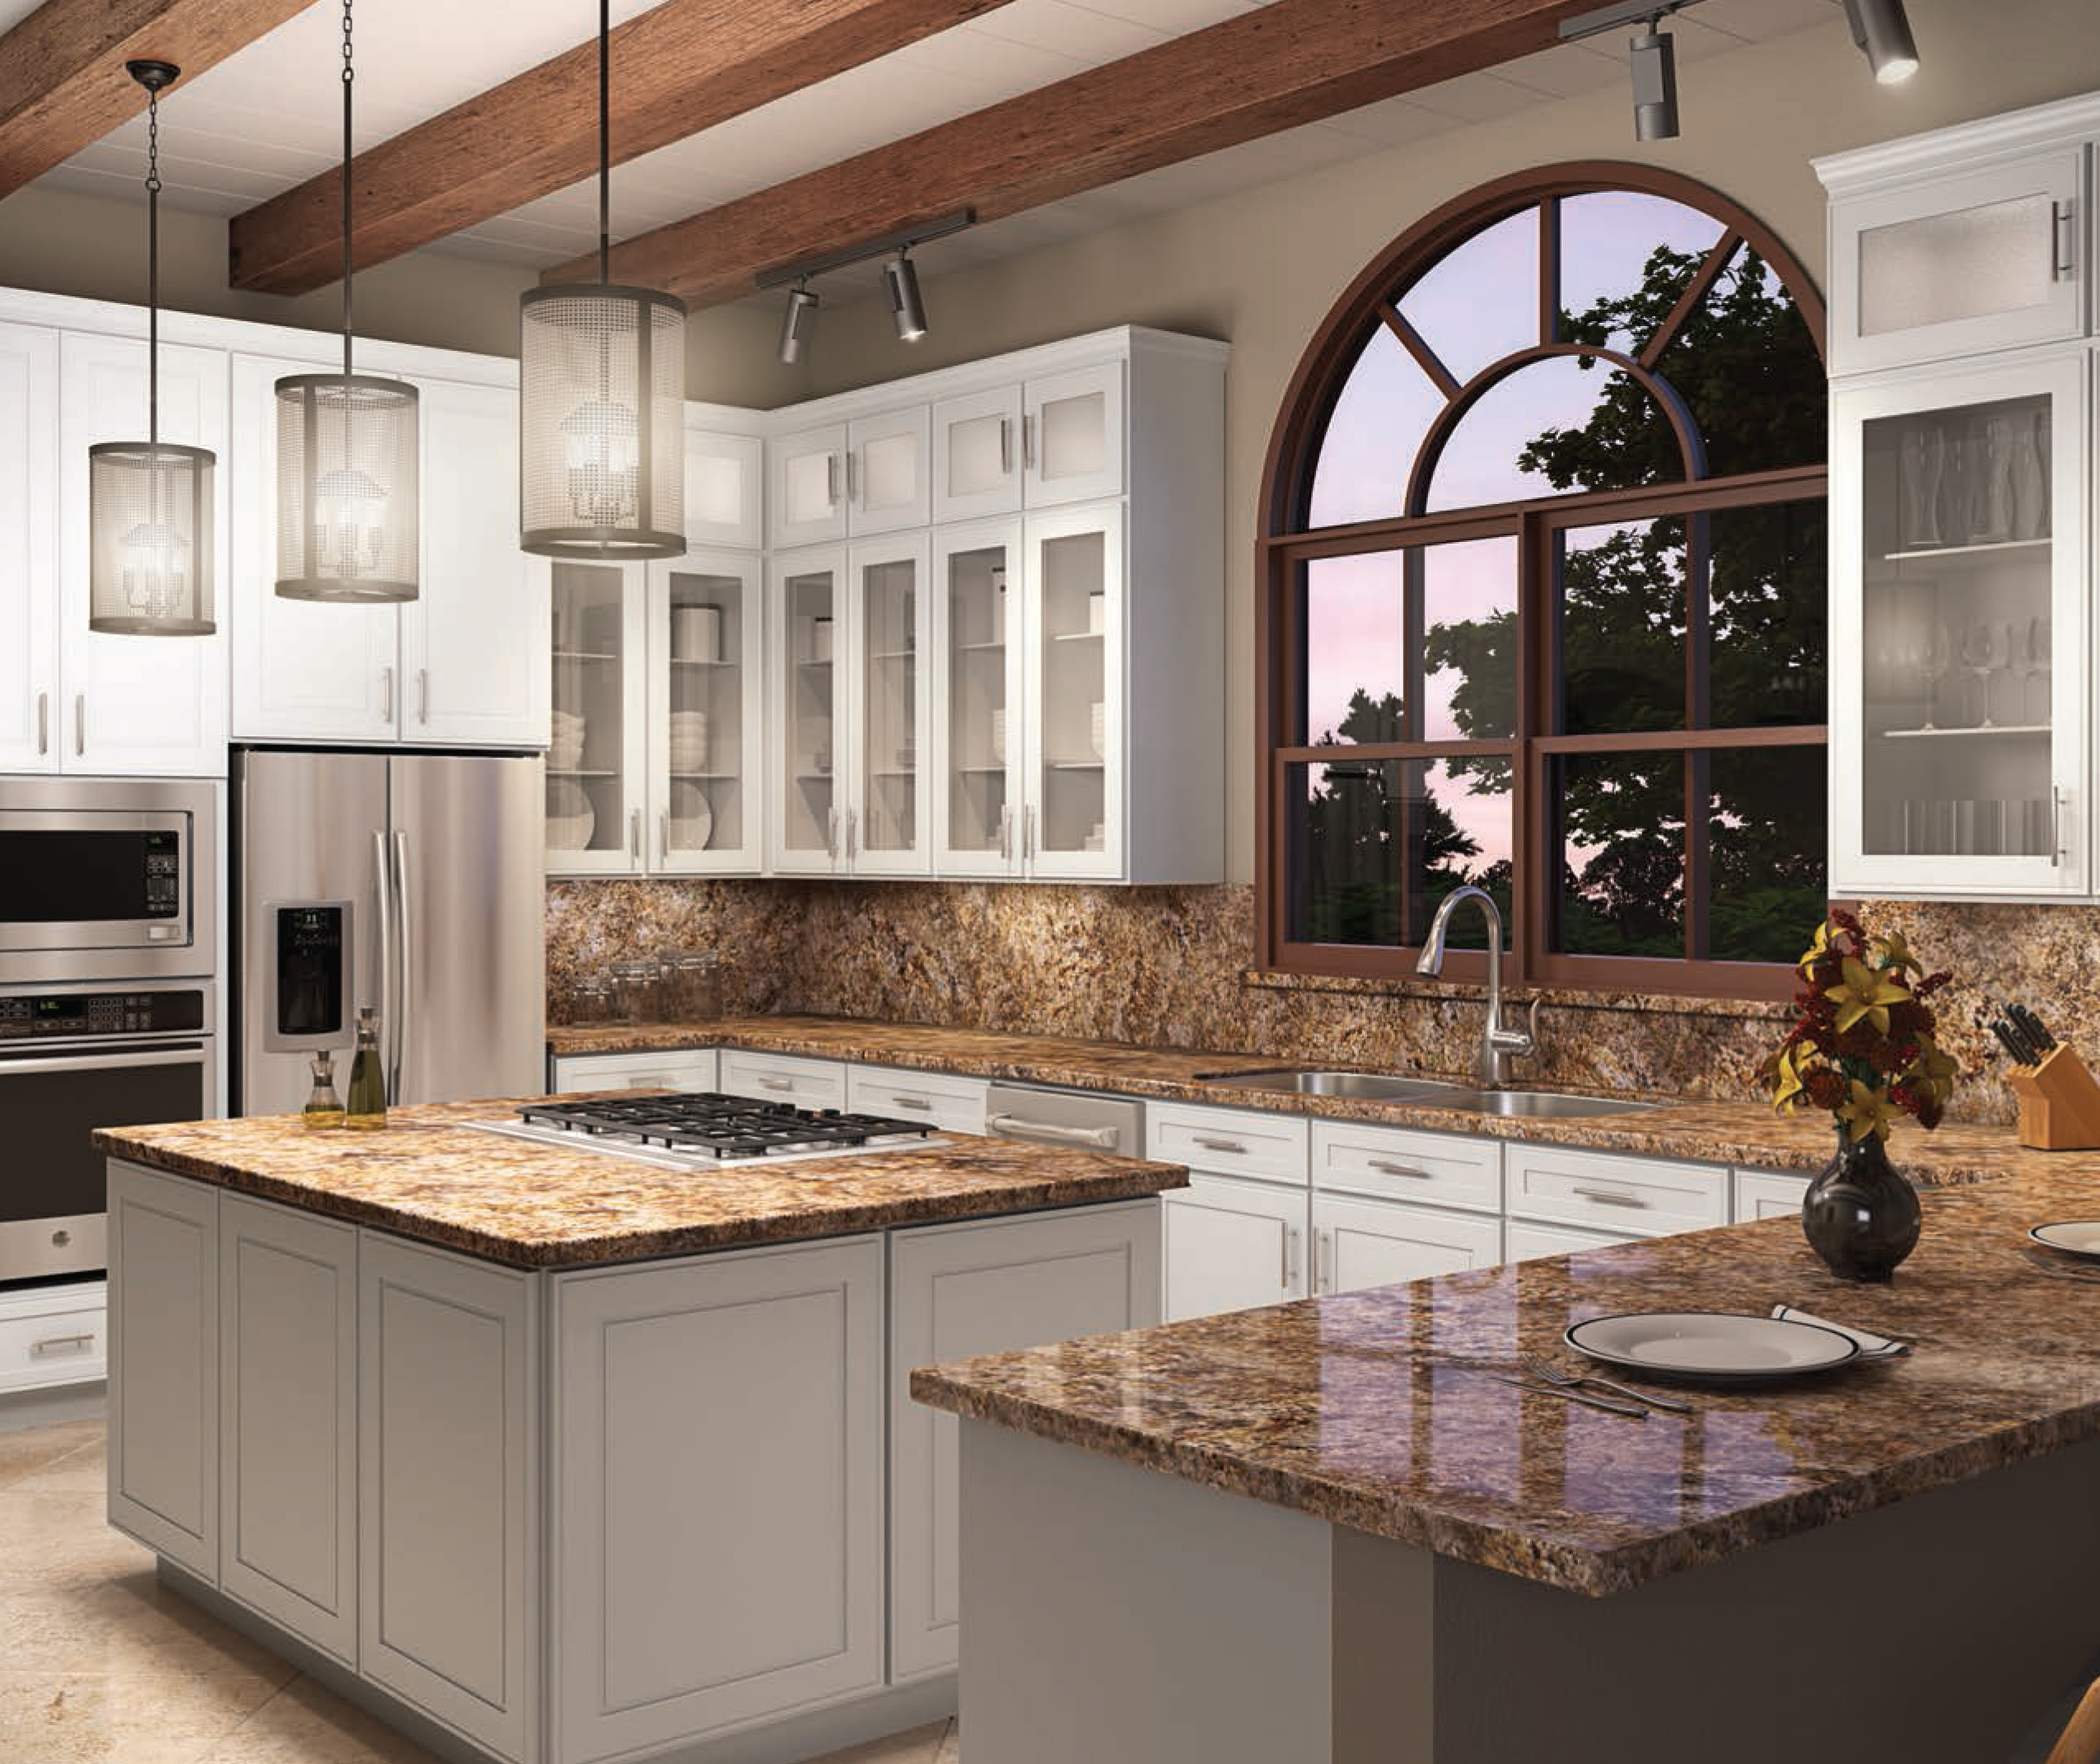 Express Kitchens Offers New Maple Cabinetry